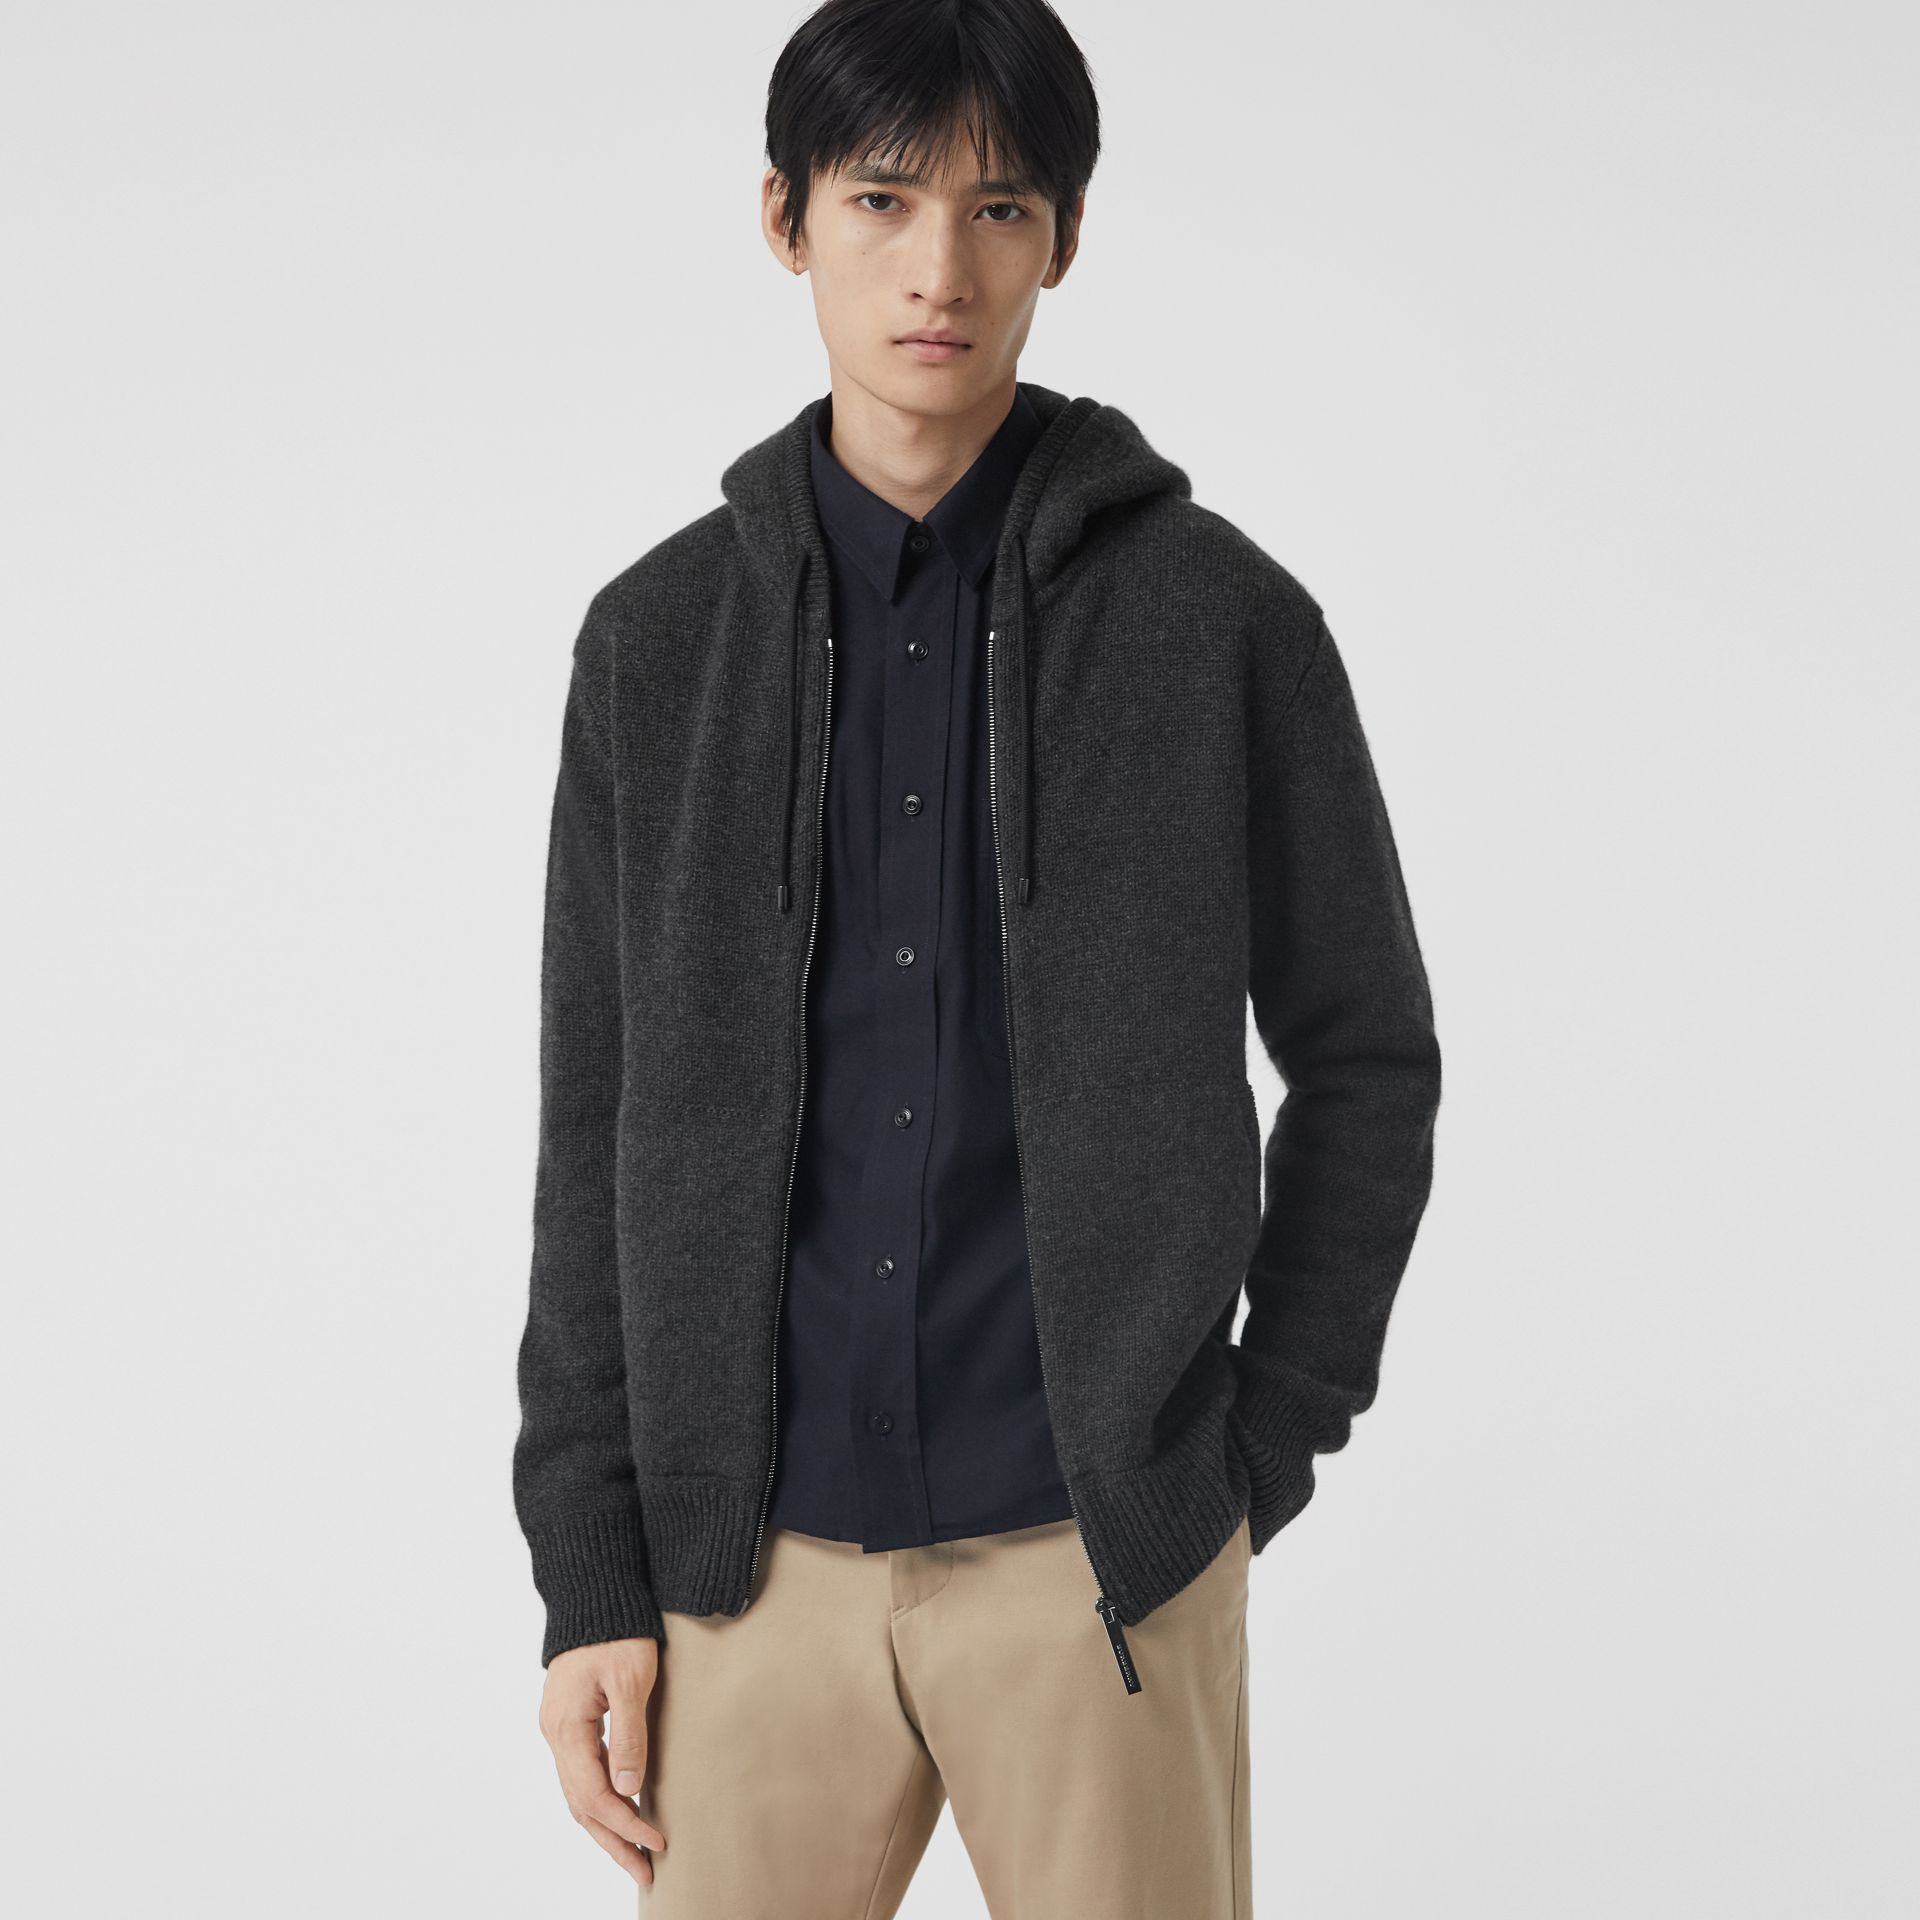 Cashmere Hooded Top in Charcoal Melange - Men | Burberry - gallery image 0